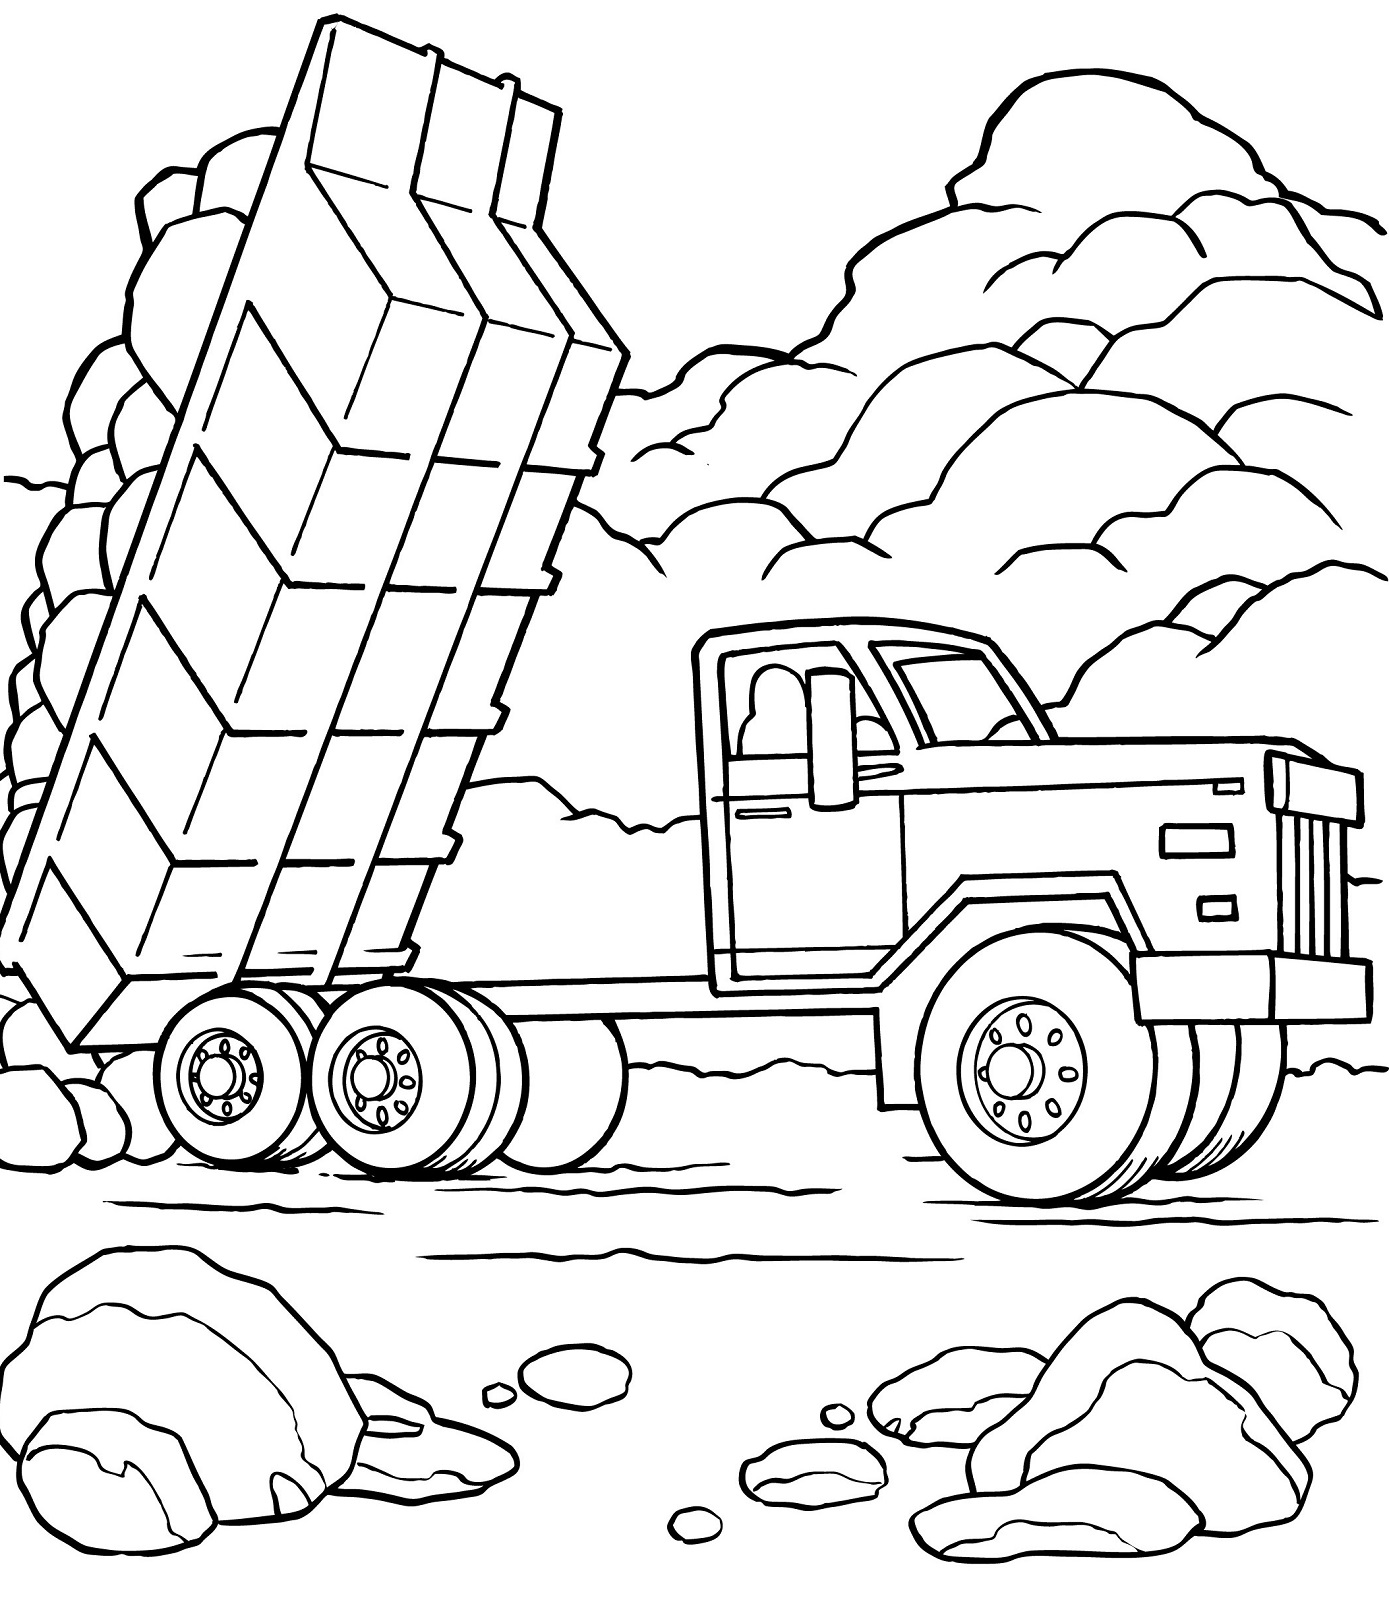 construction pictures to color construction tools coloring pages construction coloring construction to pictures color